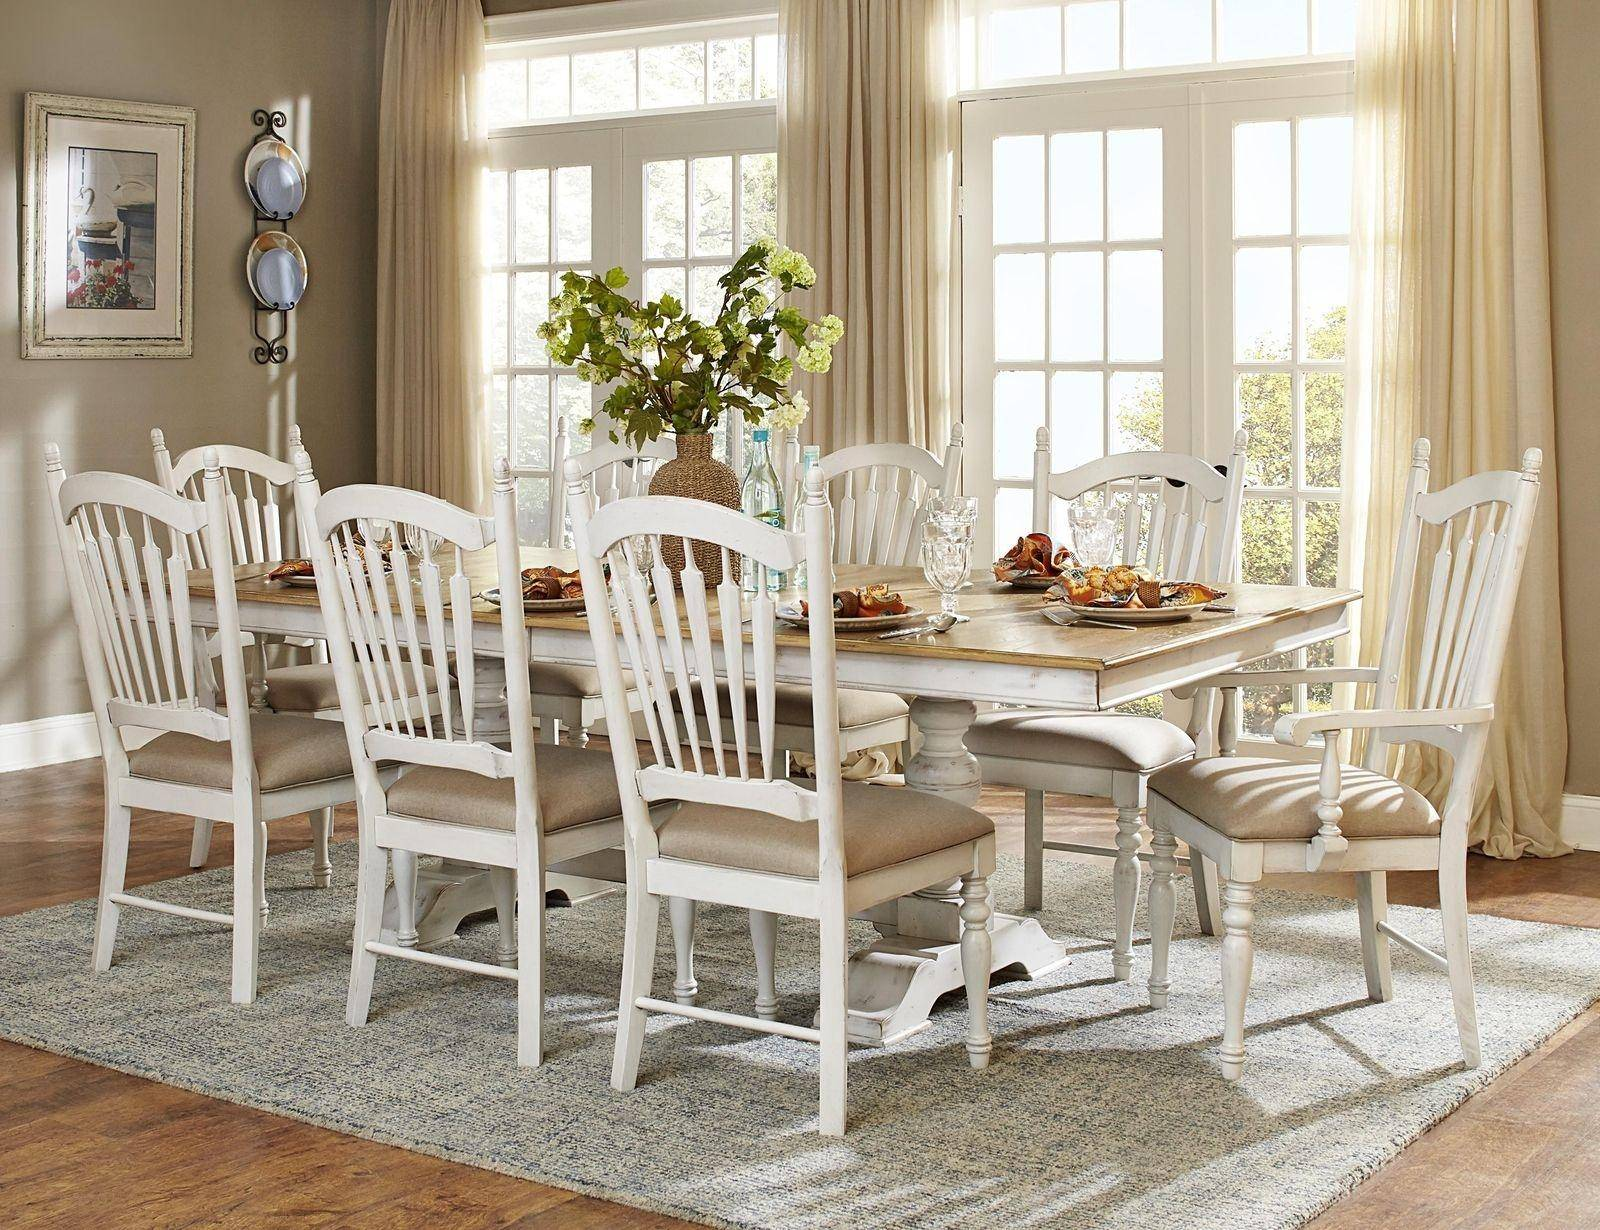 Outstanding 5123 96 Country 9P White Oak Wood Pedestal Leaf Dining Table Set Chair Gmtry Best Dining Table And Chair Ideas Images Gmtryco